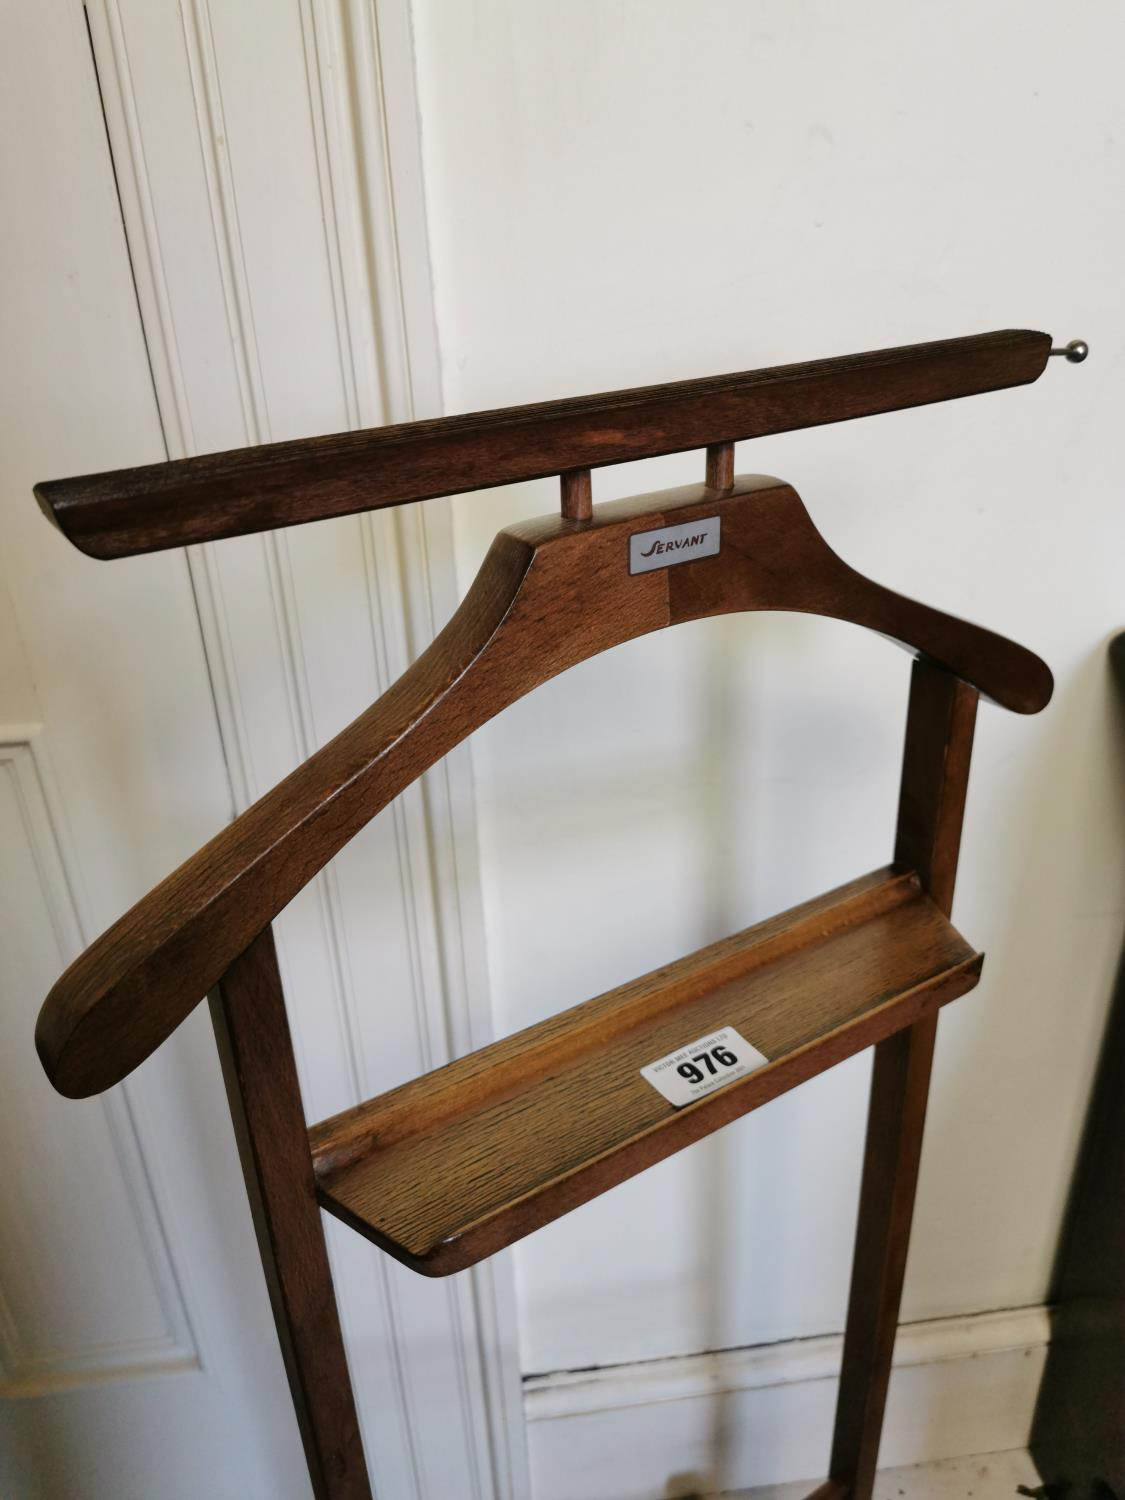 1970s wooden valet stand. - Image 2 of 2